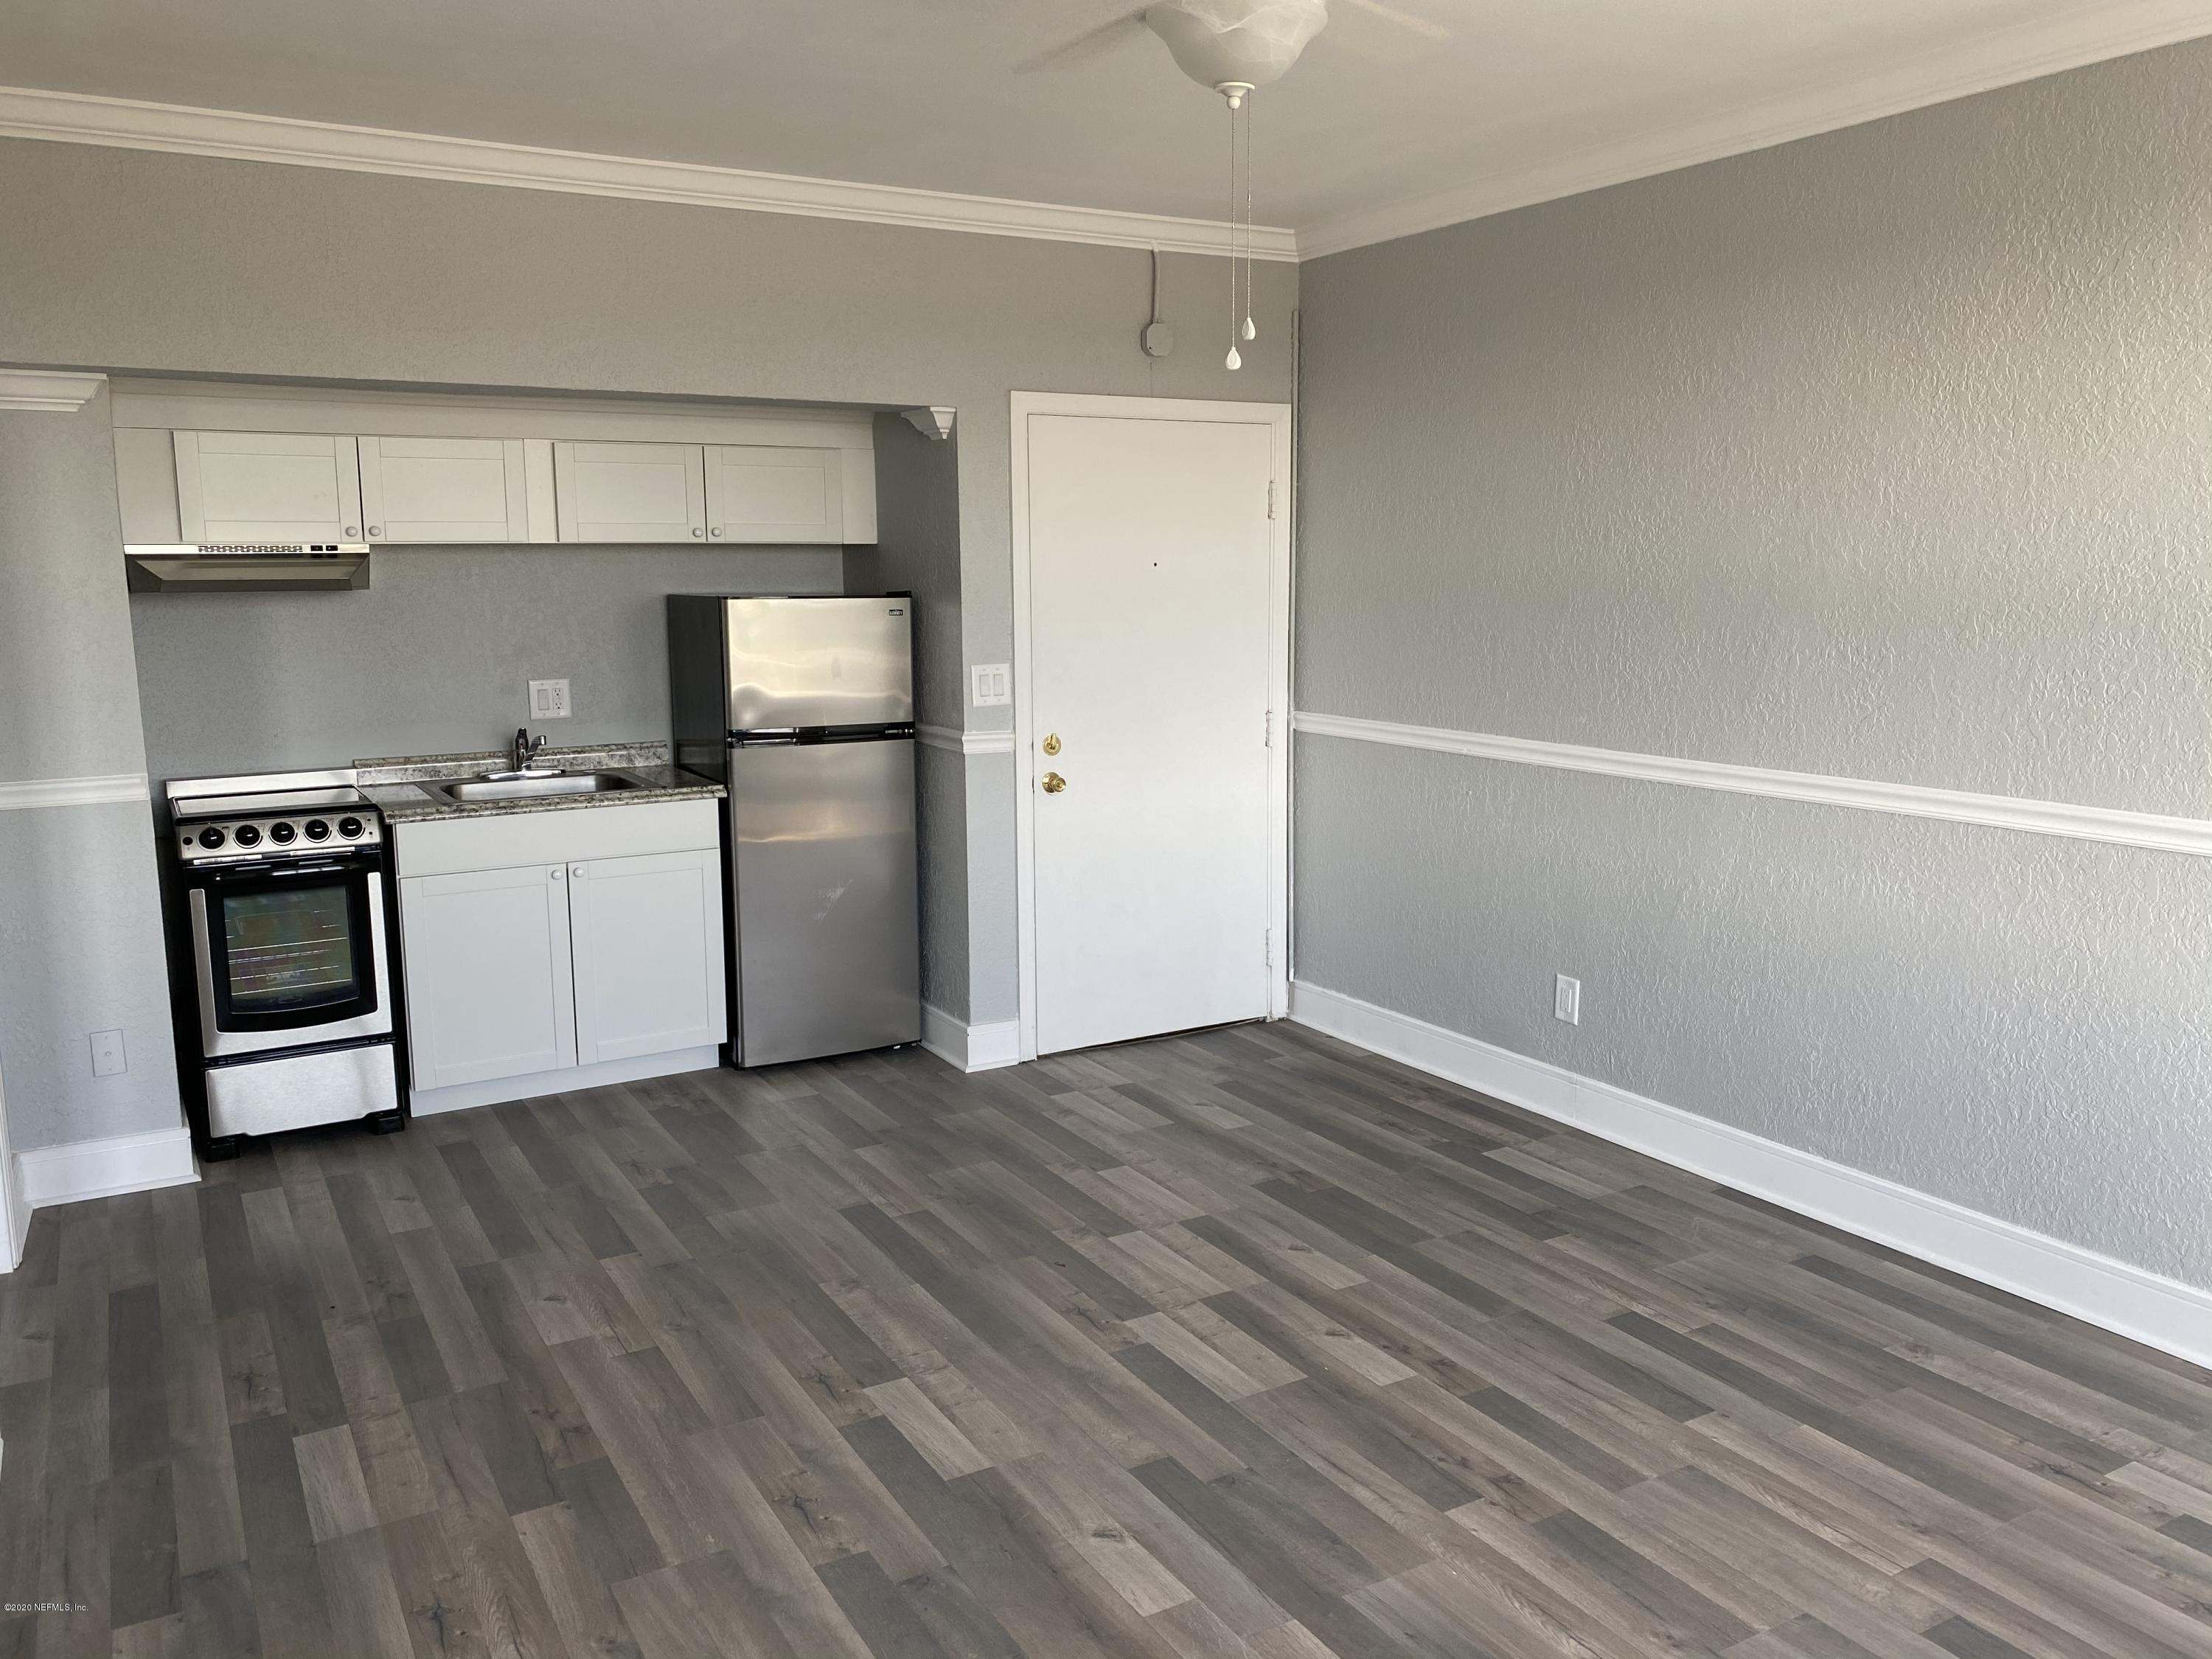 311 ASHLEY, JACKSONVILLE, FLORIDA 32202, 1 Bedroom Bedrooms, ,1 BathroomBathrooms,Investment / MultiFamily,For sale,ASHLEY,1080277